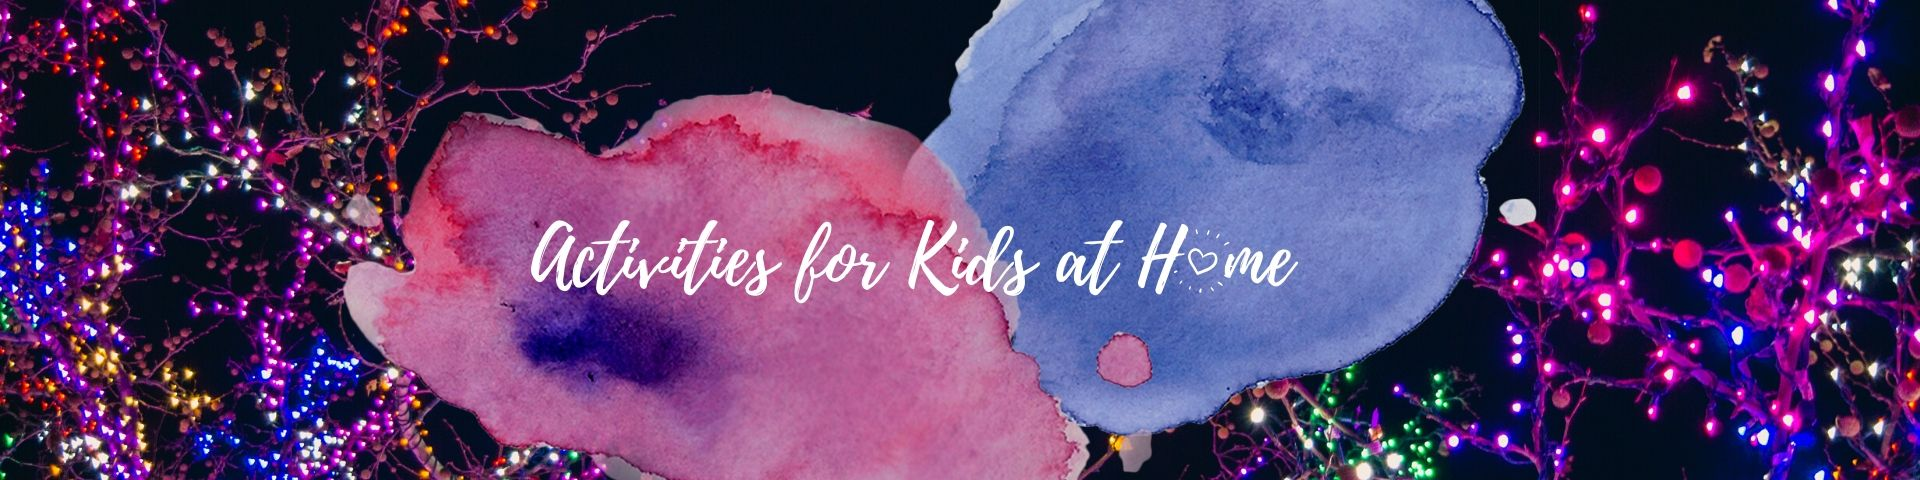 Activities for Kids at Home Header